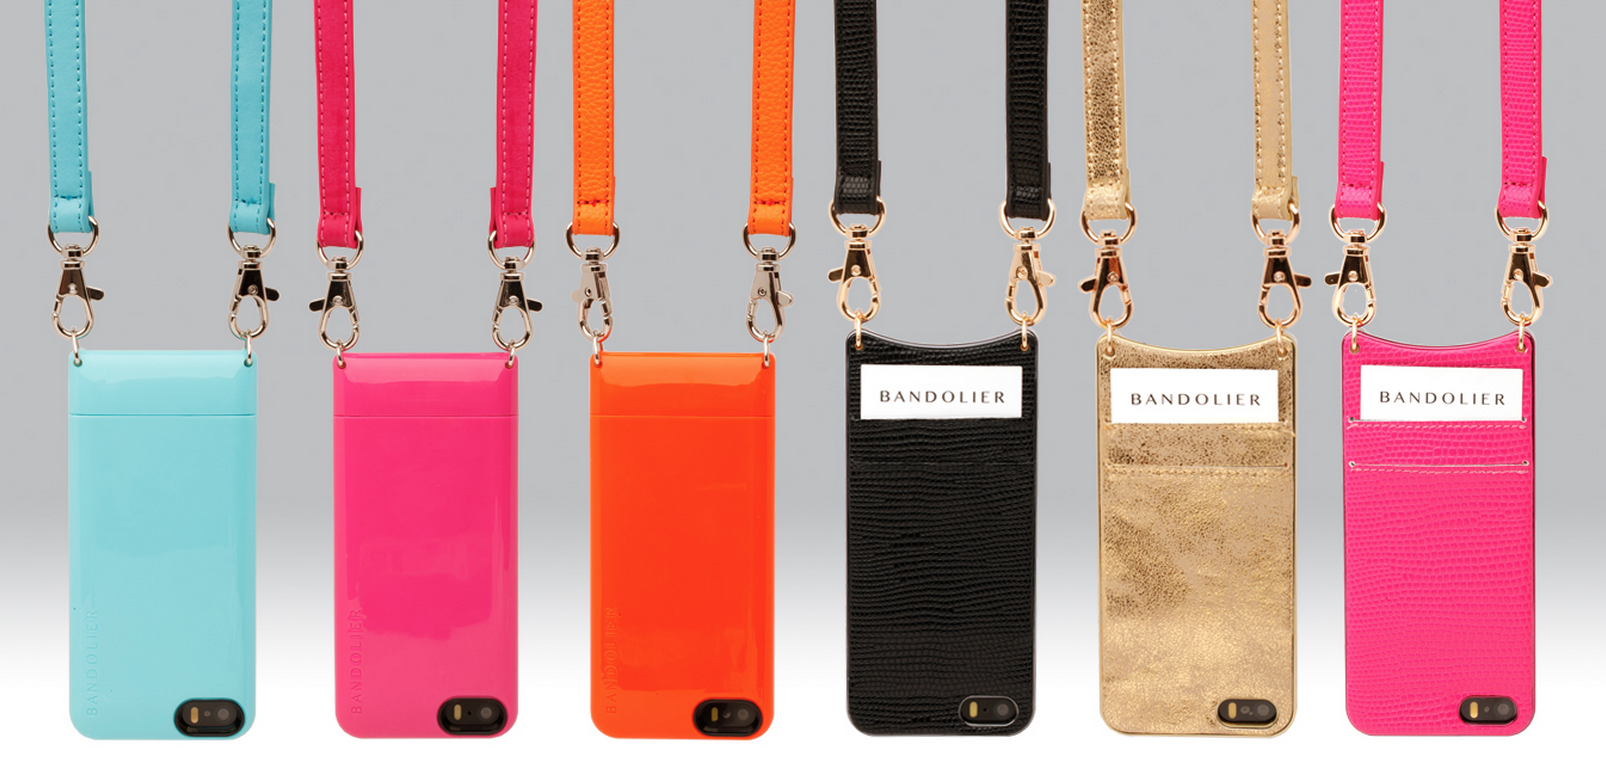 The Bandolier iPhone case: Function meets style meets you need a date night now